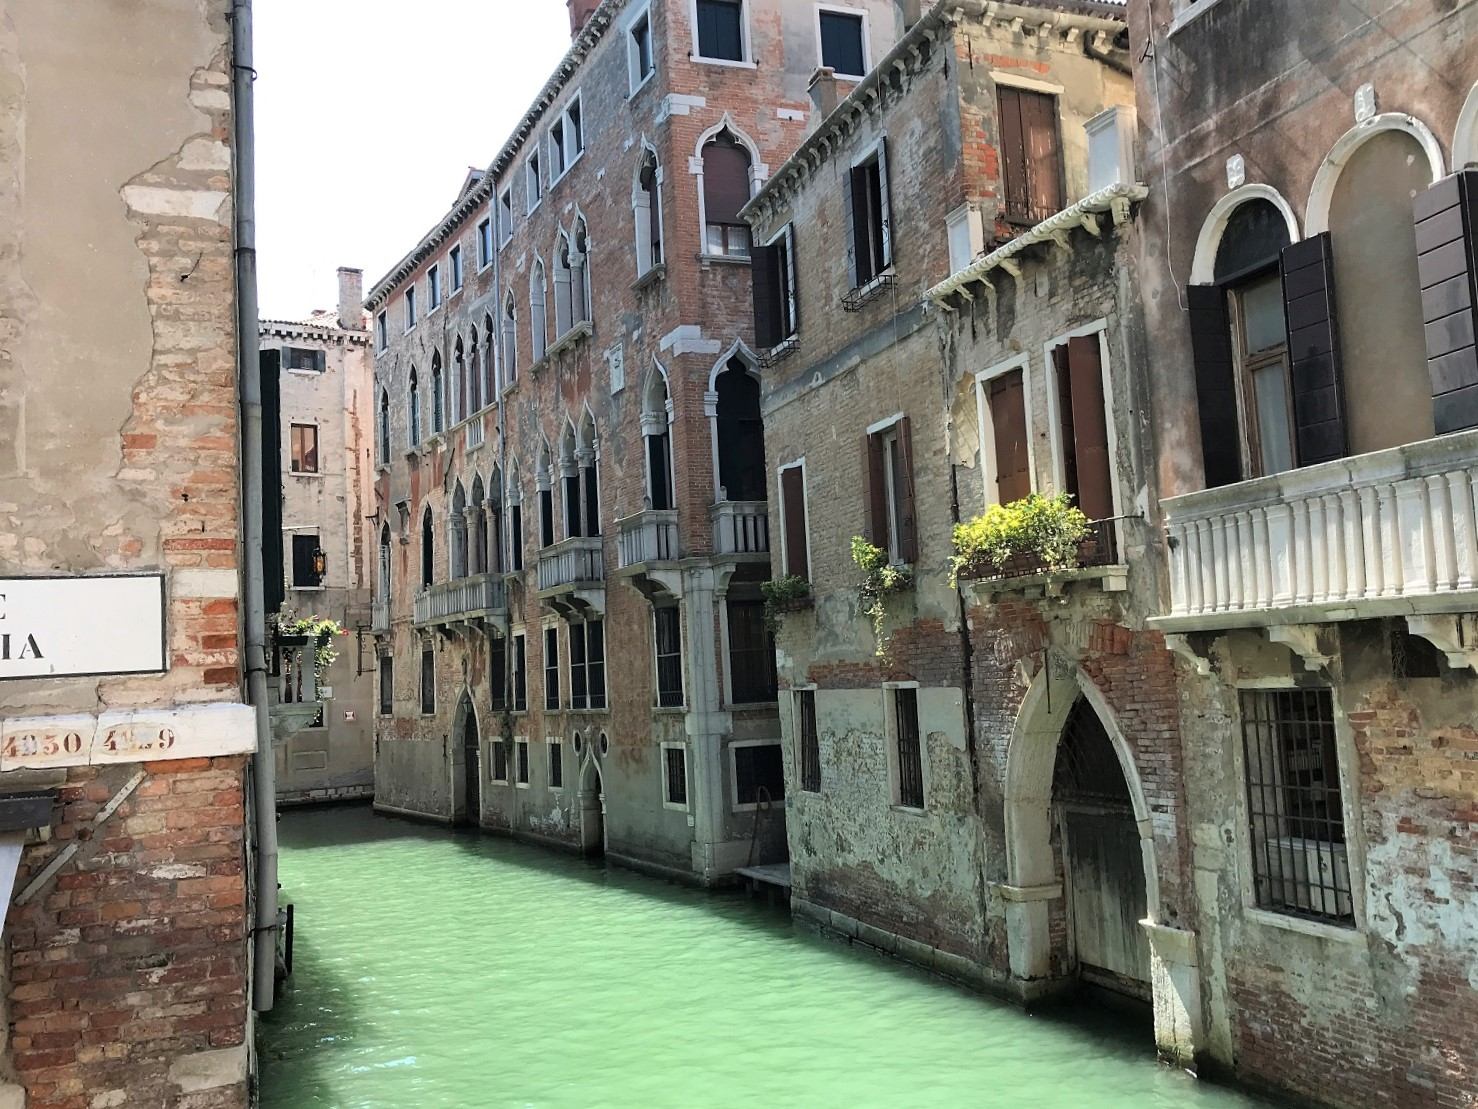 Canals and old homes in Venice